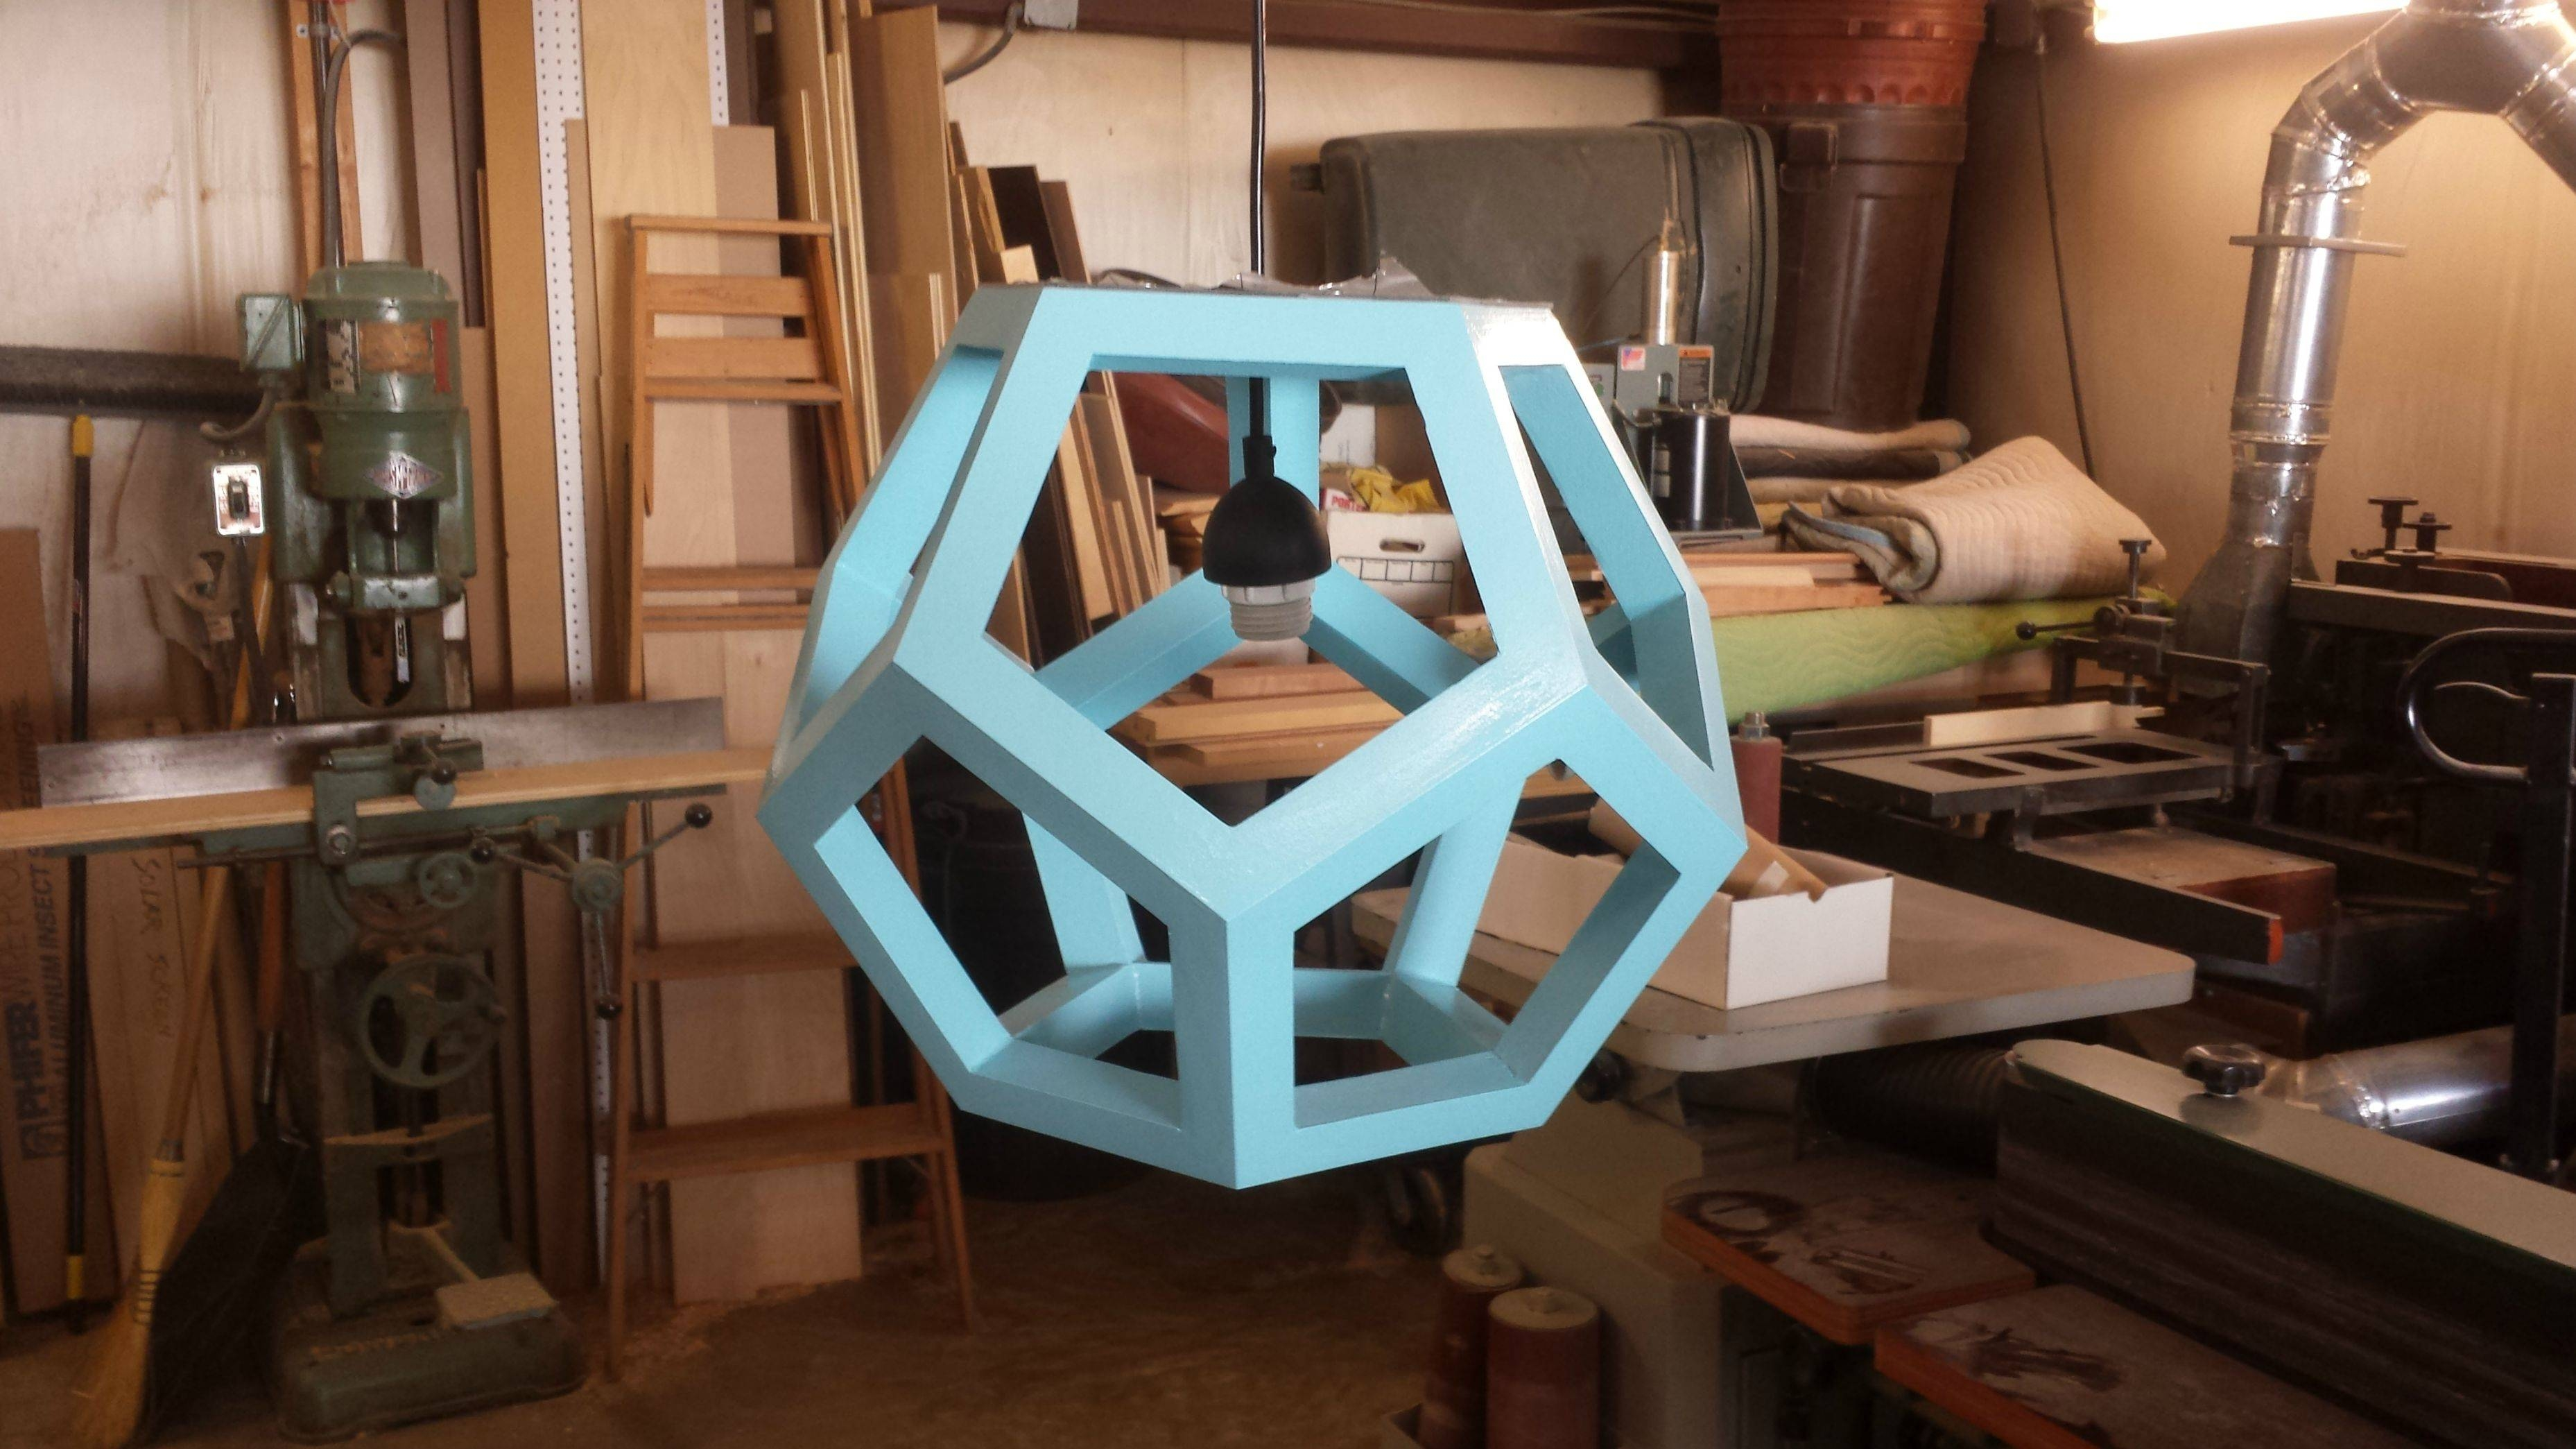 Dodecahedron (First One) : Woodworking regarding Dodecahedron Pendant Lights (Image 11 of 15)